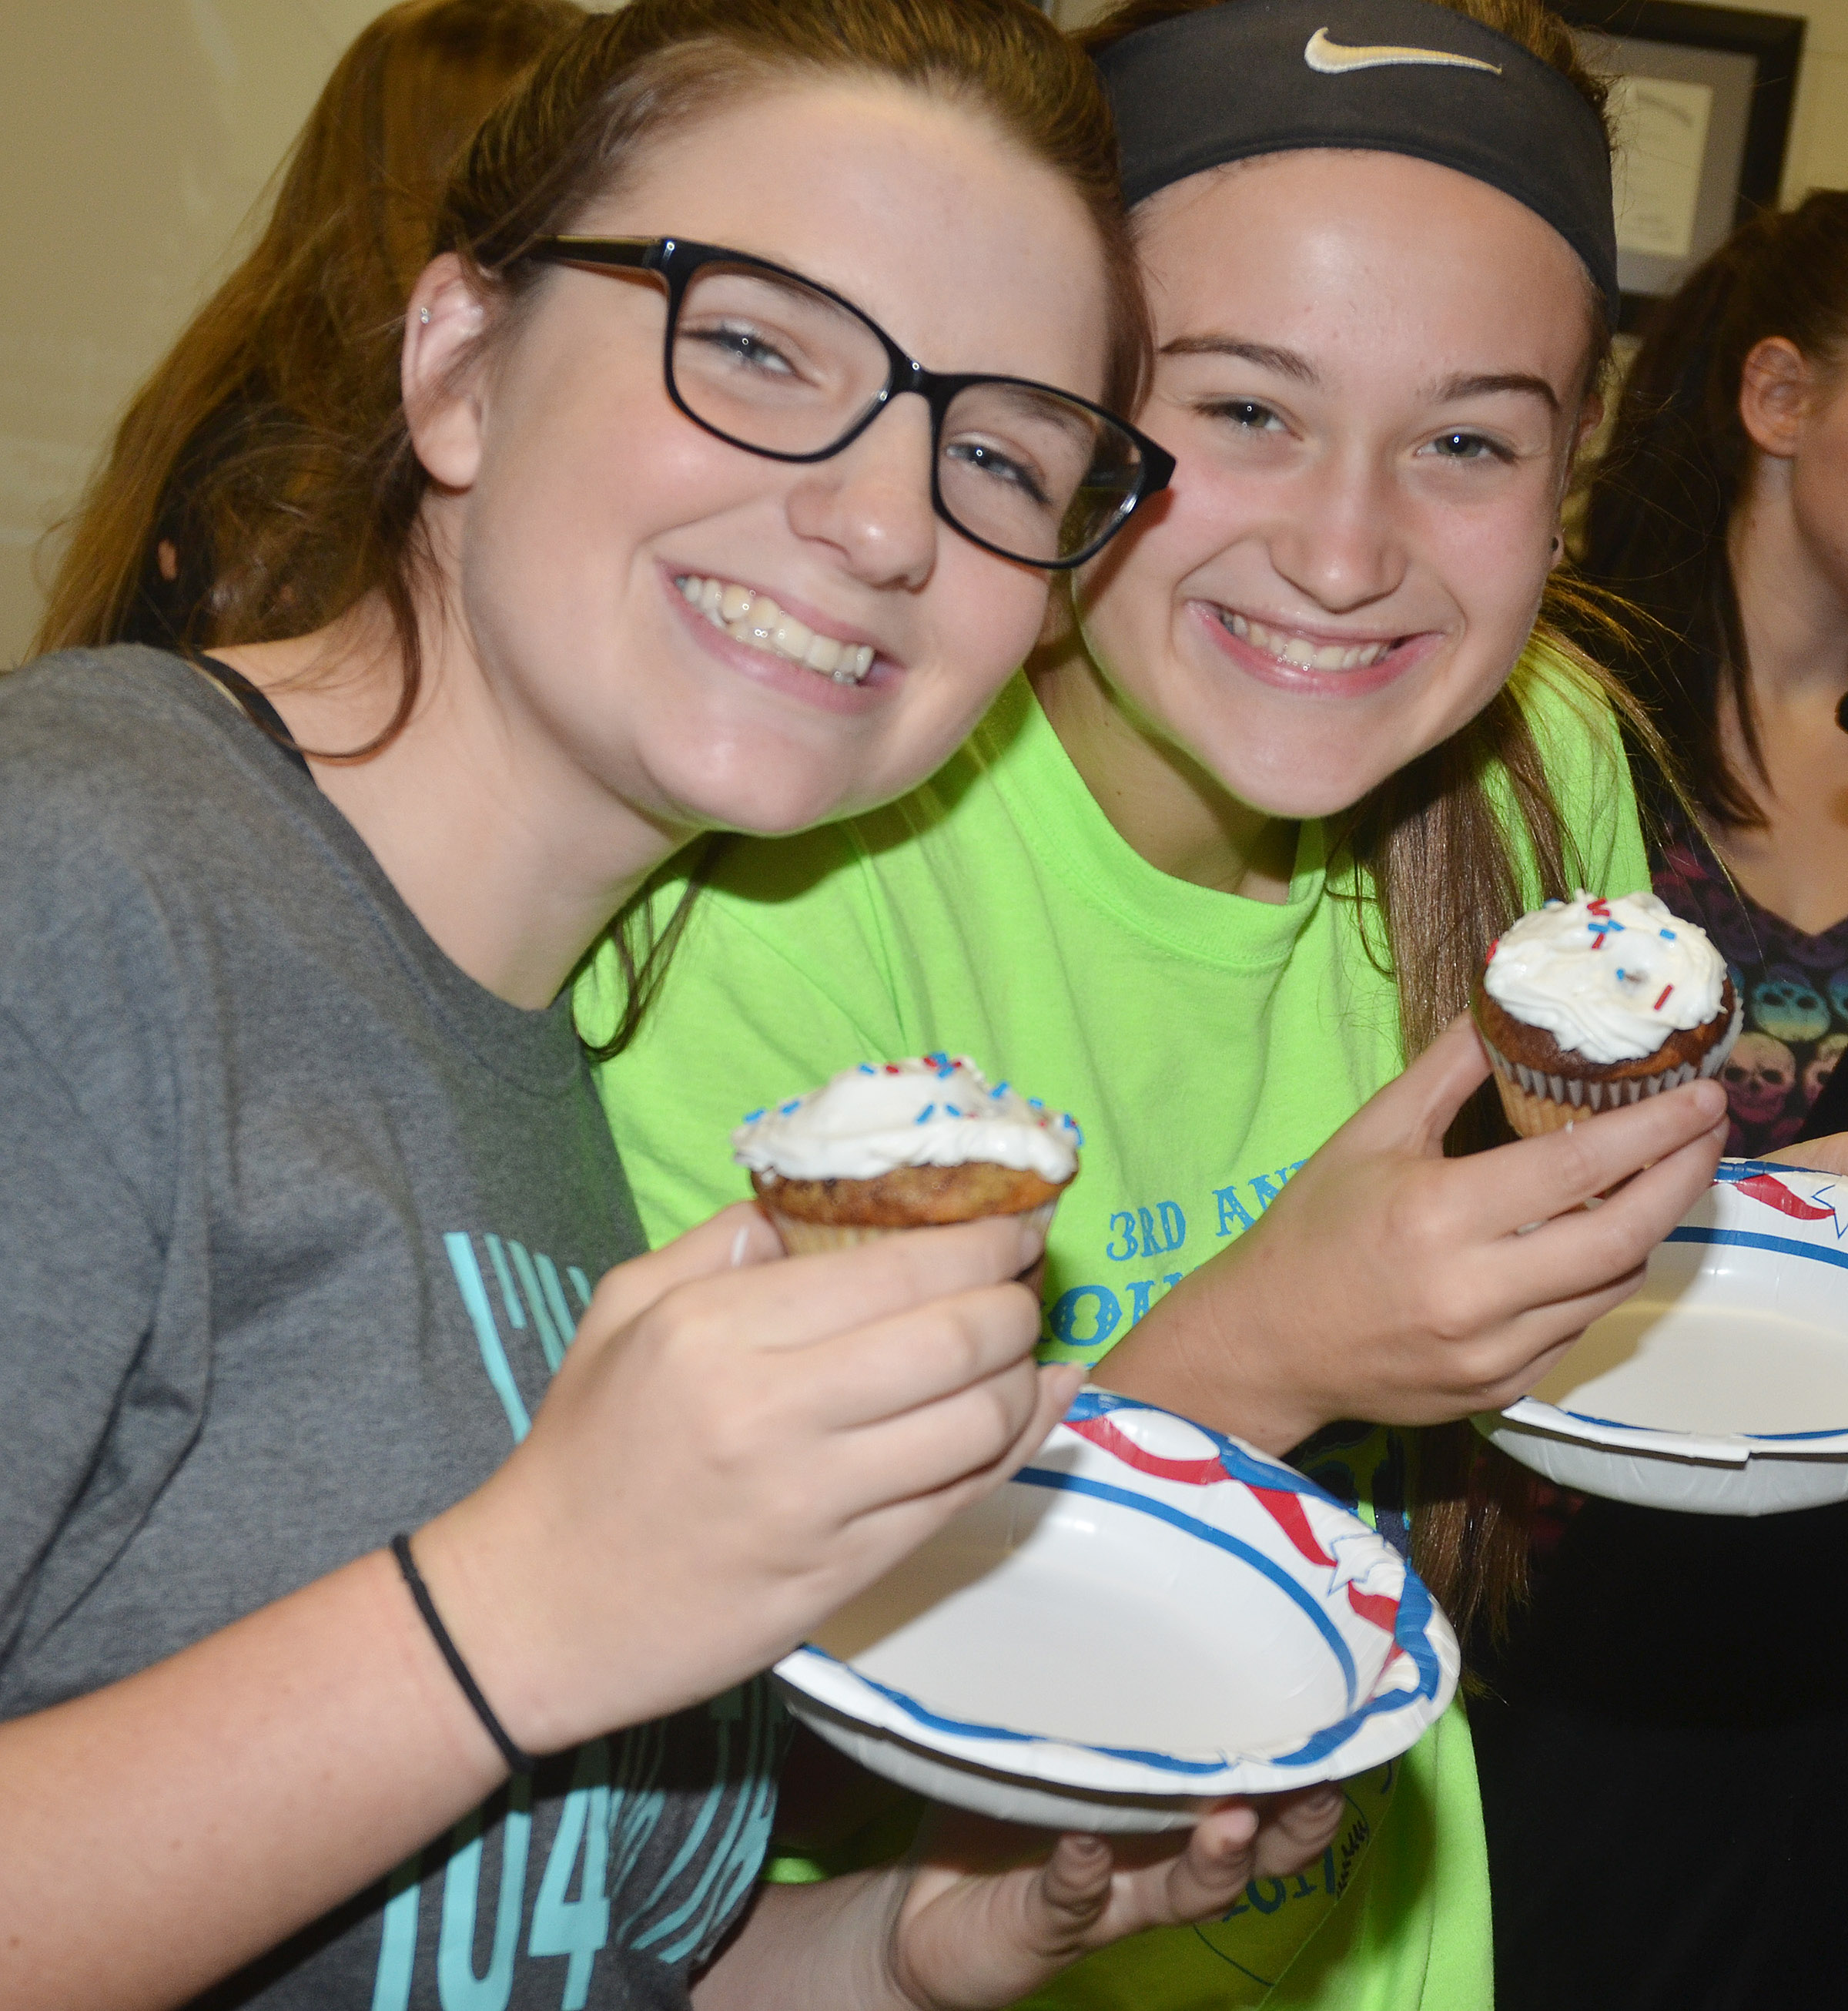 CES sophomores Sydney Wilson, at left, and Bailey Thompson enjoy their marble cake cupcakes at their Constitution Day party.